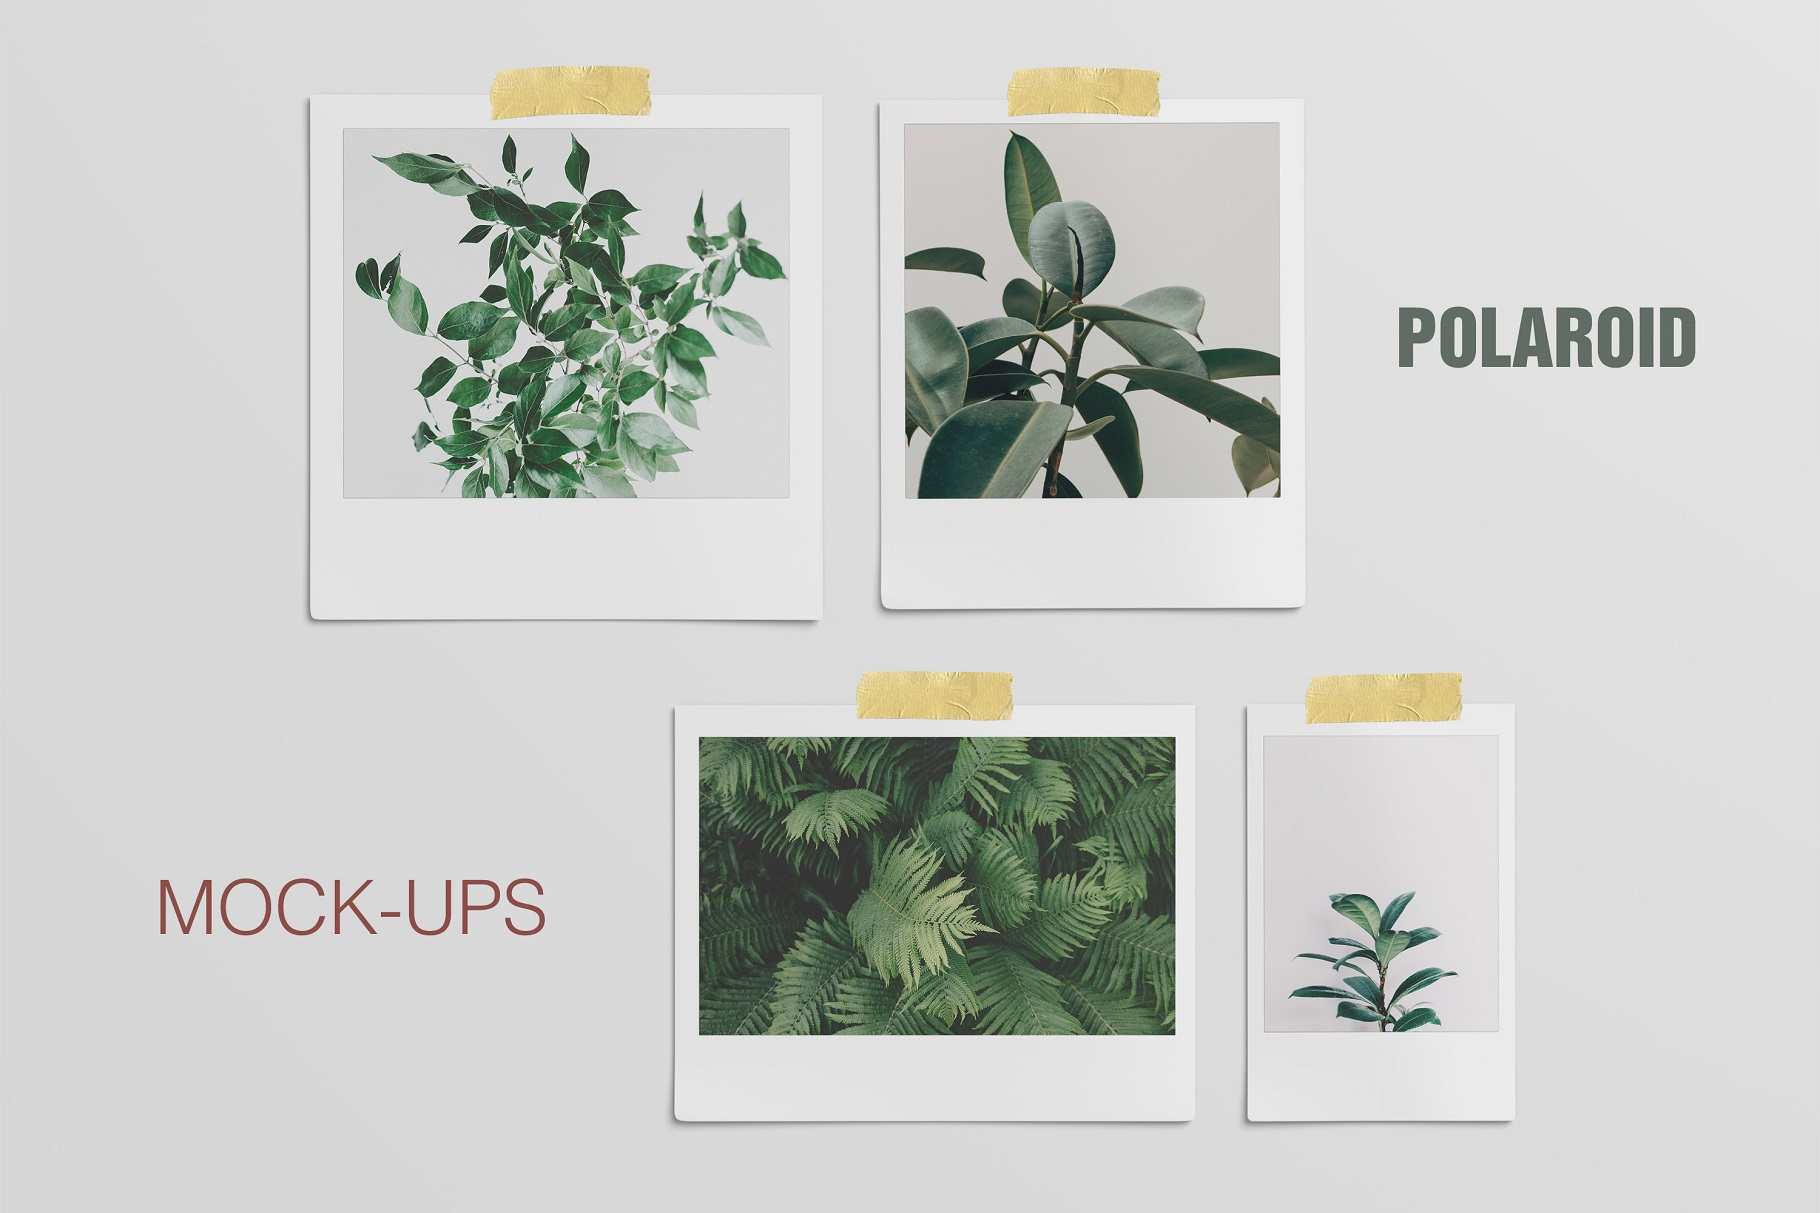 Polaroid Mockups Set example image 1